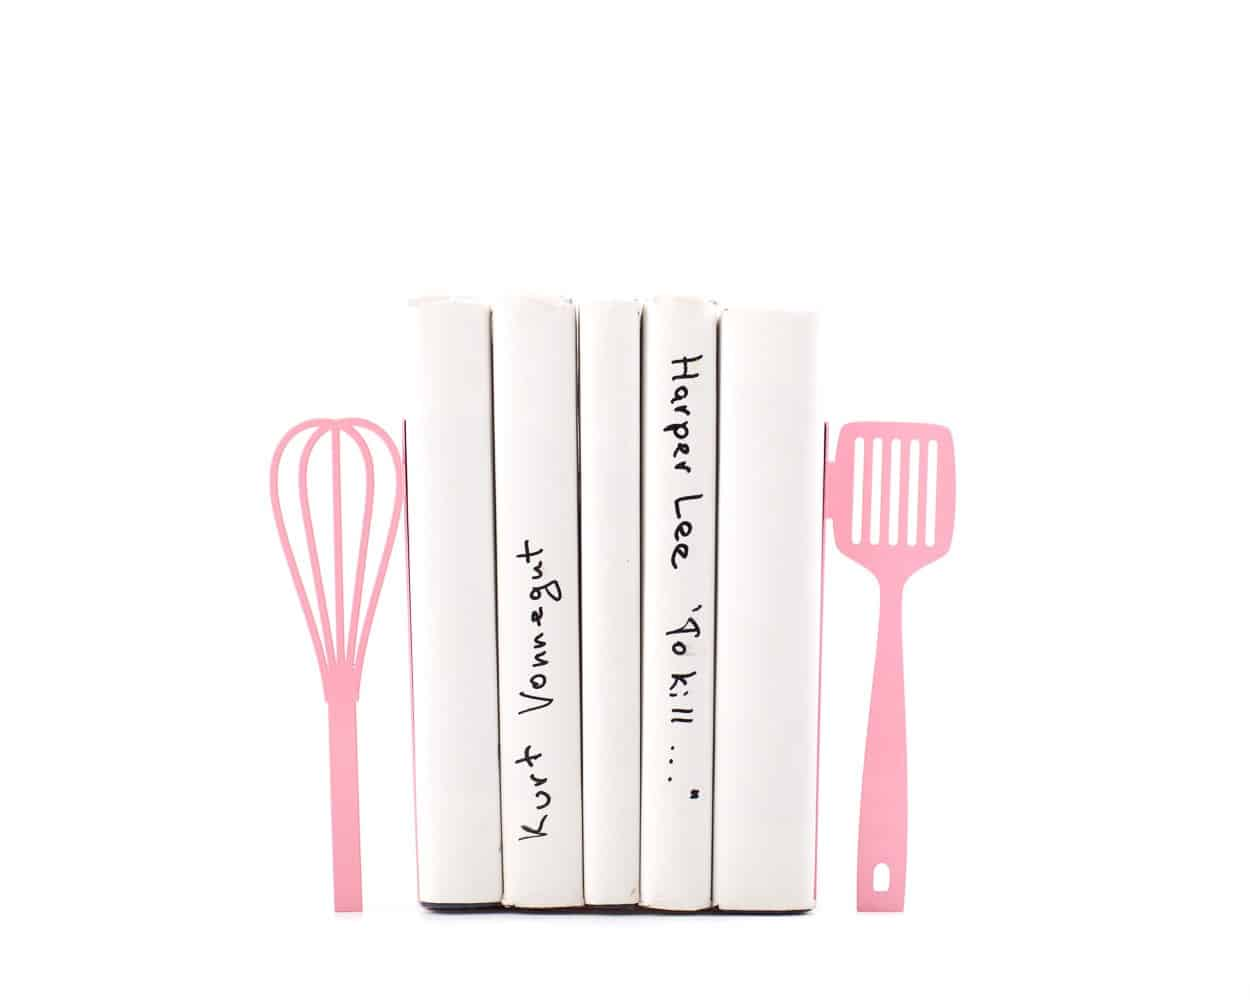 bookends_spatula_whisk_pink_kitchen